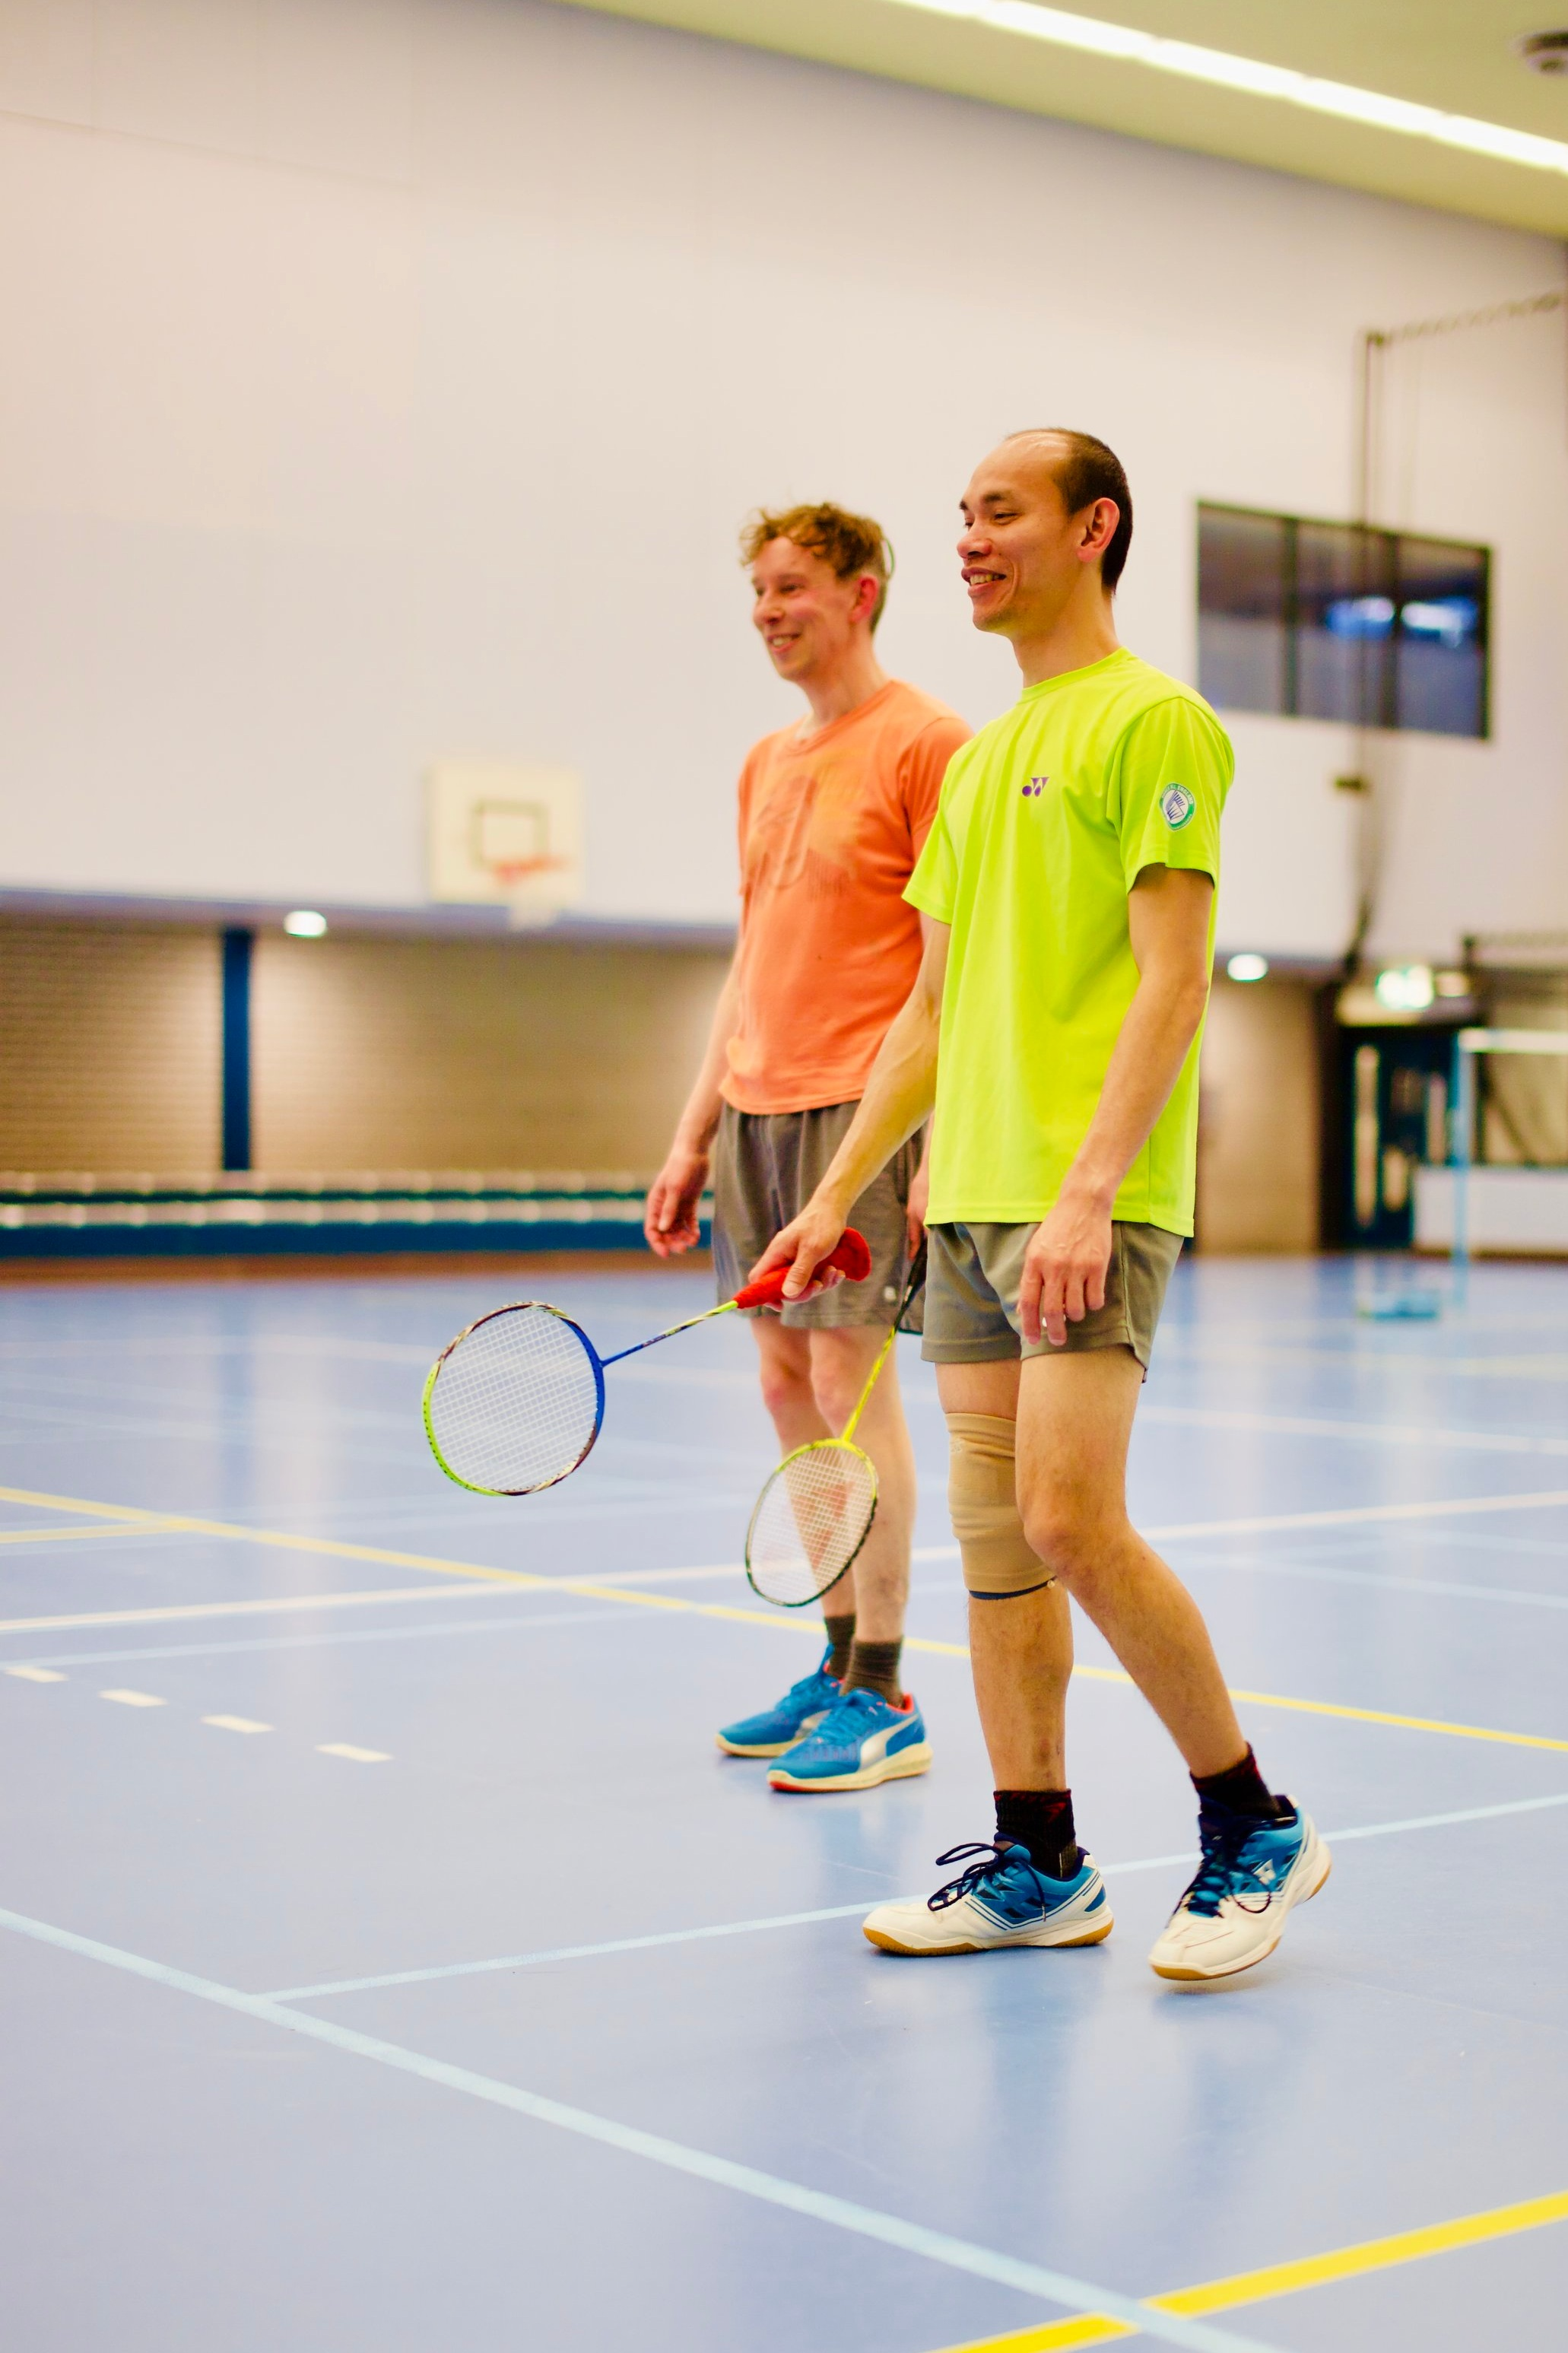 Advanced Wednesdays - On Wednesday evenings, we encourage intermediate to advanced level players to come and play a more competitive level of badminton.We also share the sports hall and interplay with another club then who also play to a more advanced level.